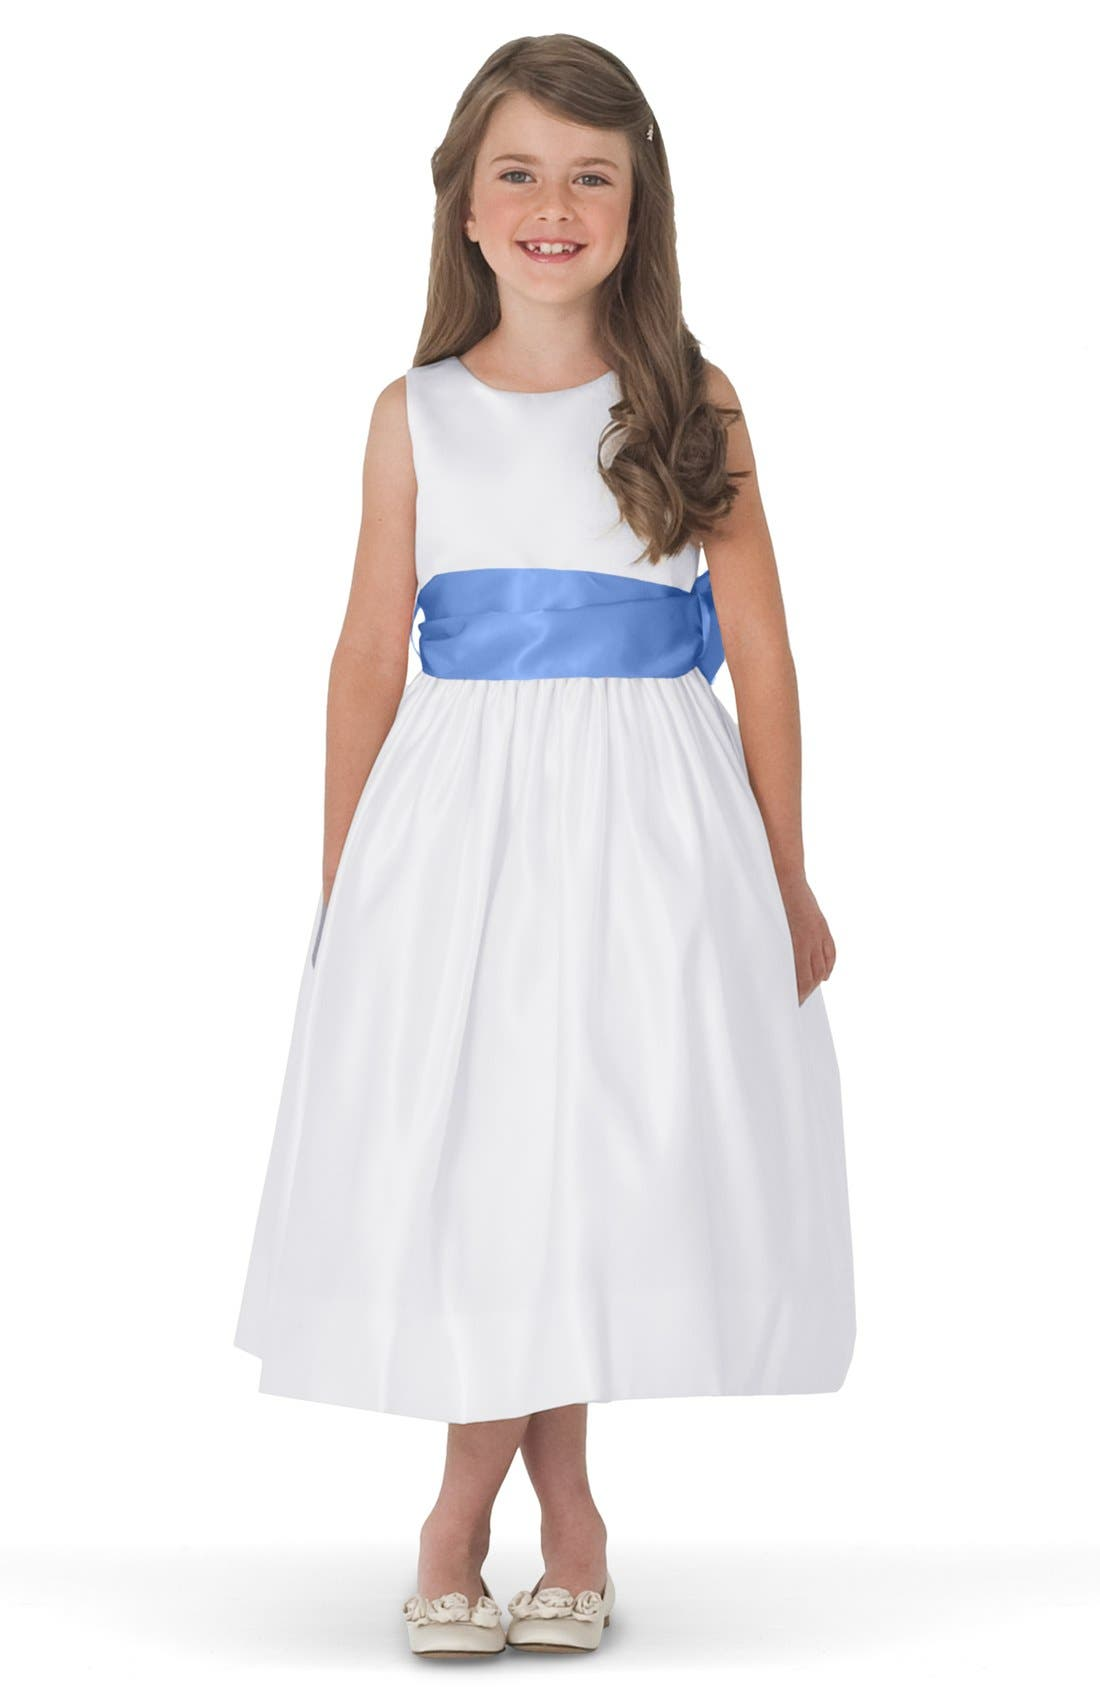 Girls' Flower Girl Dresses & Rompers: Everyday & Special Occasion ...